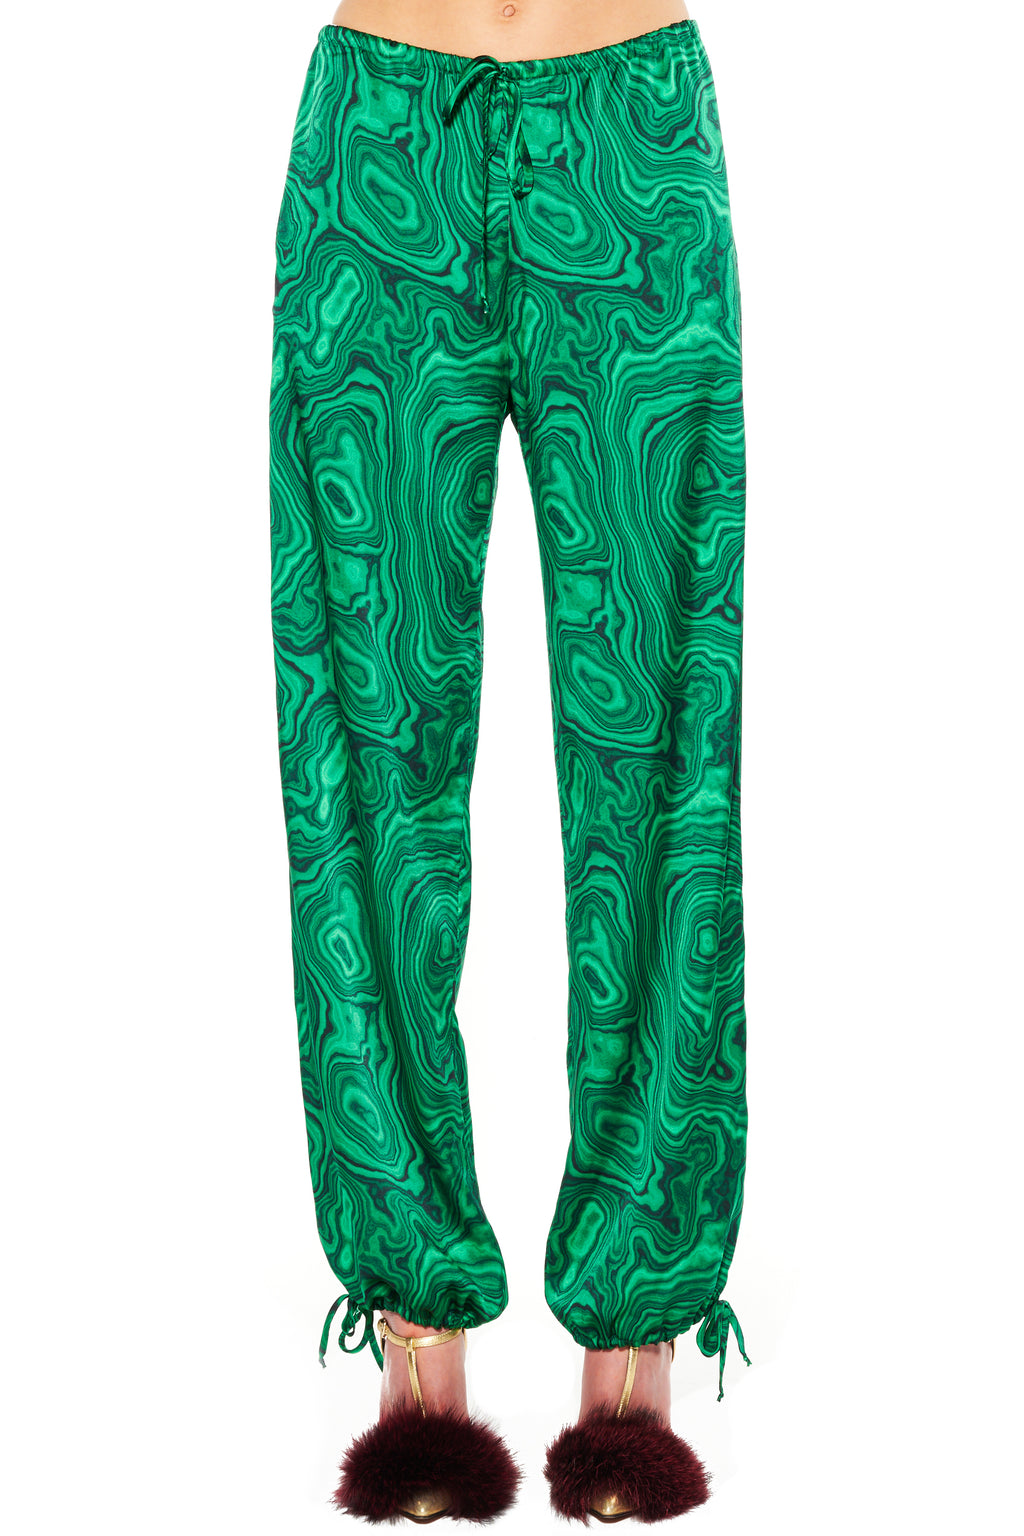 """HIGH AS A MALACHITE"" DRAWSTRING PANTS - Women's Bottoms - Libertine"